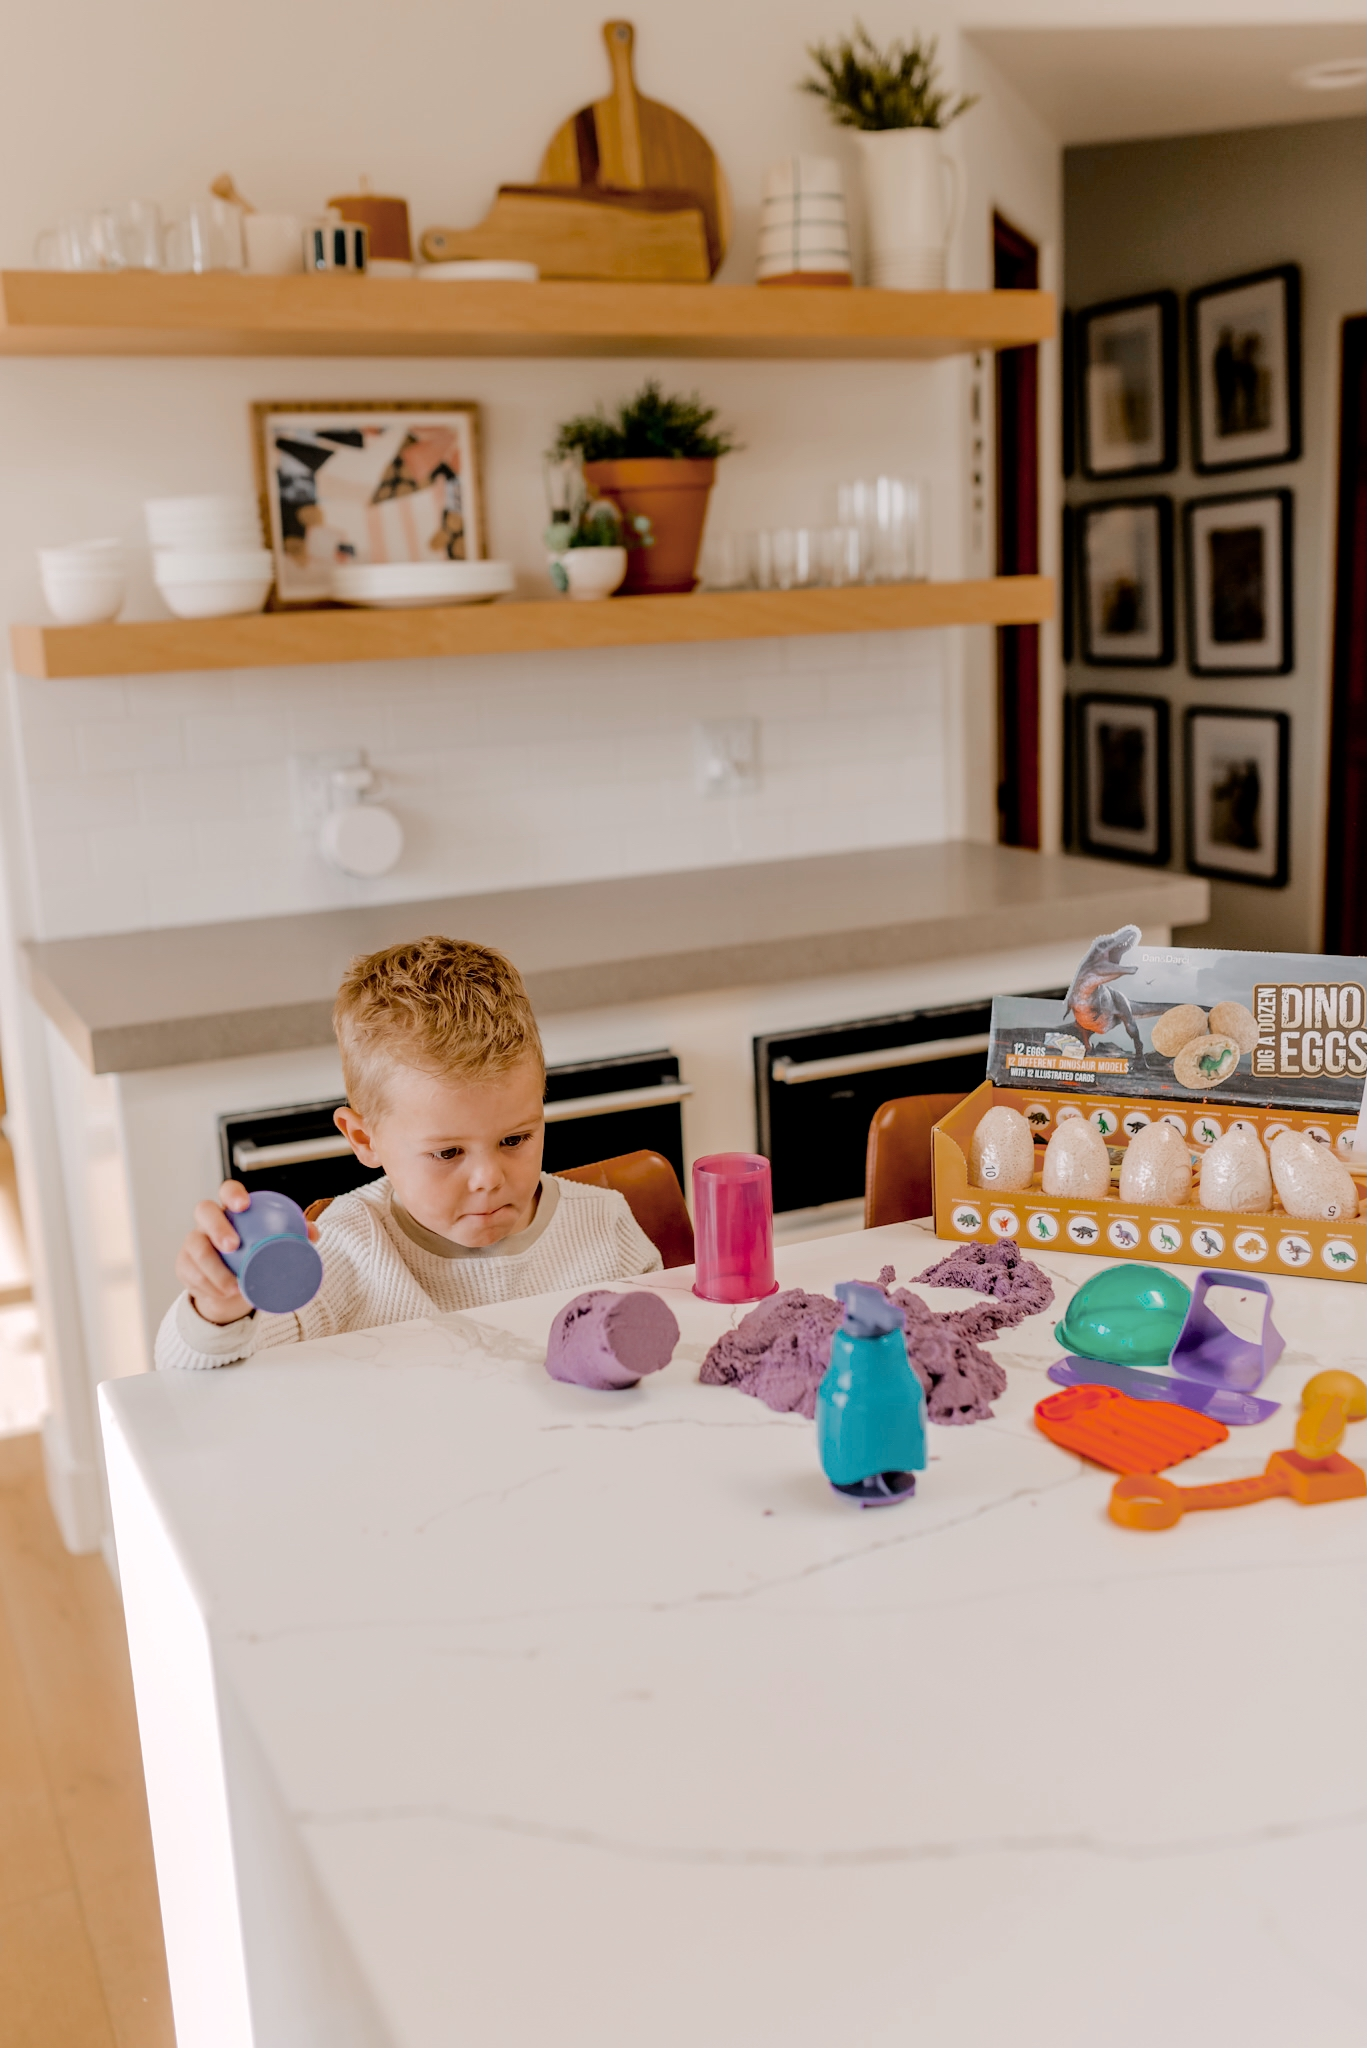 24 PRESCHOOLER GIFTS YOUR 3 TO 5 YEAR OLDS WILL LOVE featured by top San Diego lifestyle blogger, Navy Grace |Preschooler Gifts by popular San Diego lifestyle blog, Navy Grace: image of a young boy playing with kinetic sand.